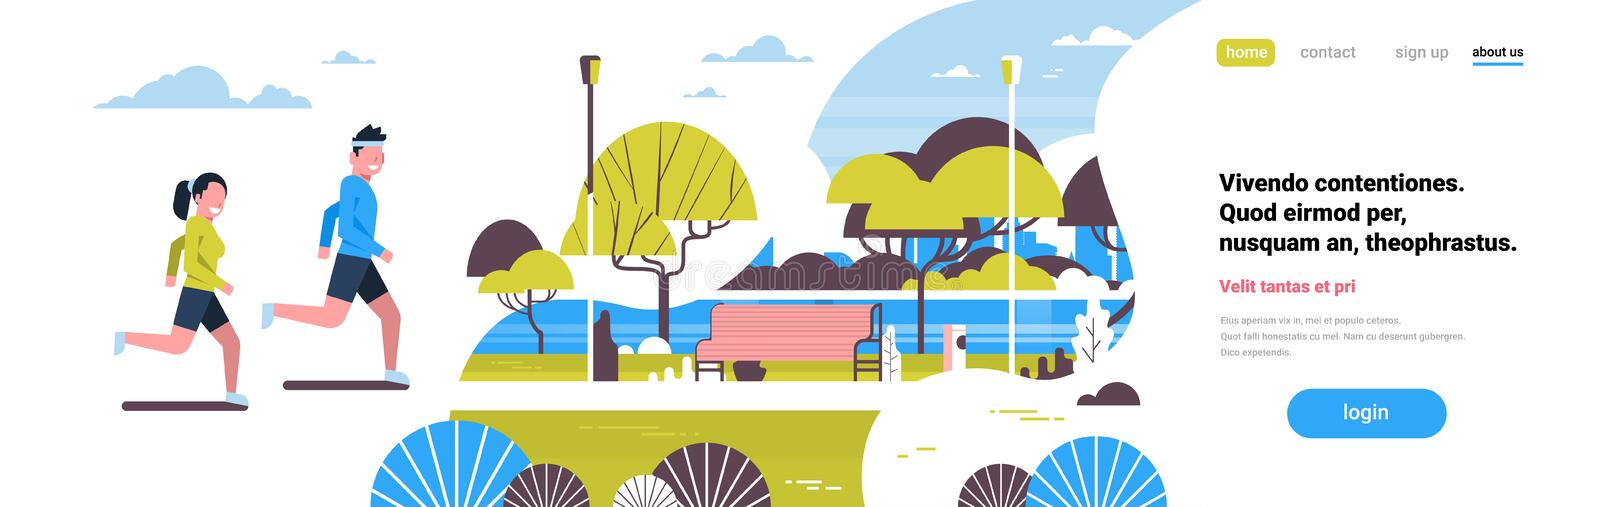 Woman man couple running city park green lawn trees river wooden bench landscape background copy space flat banner. Vector illustration stock illustration